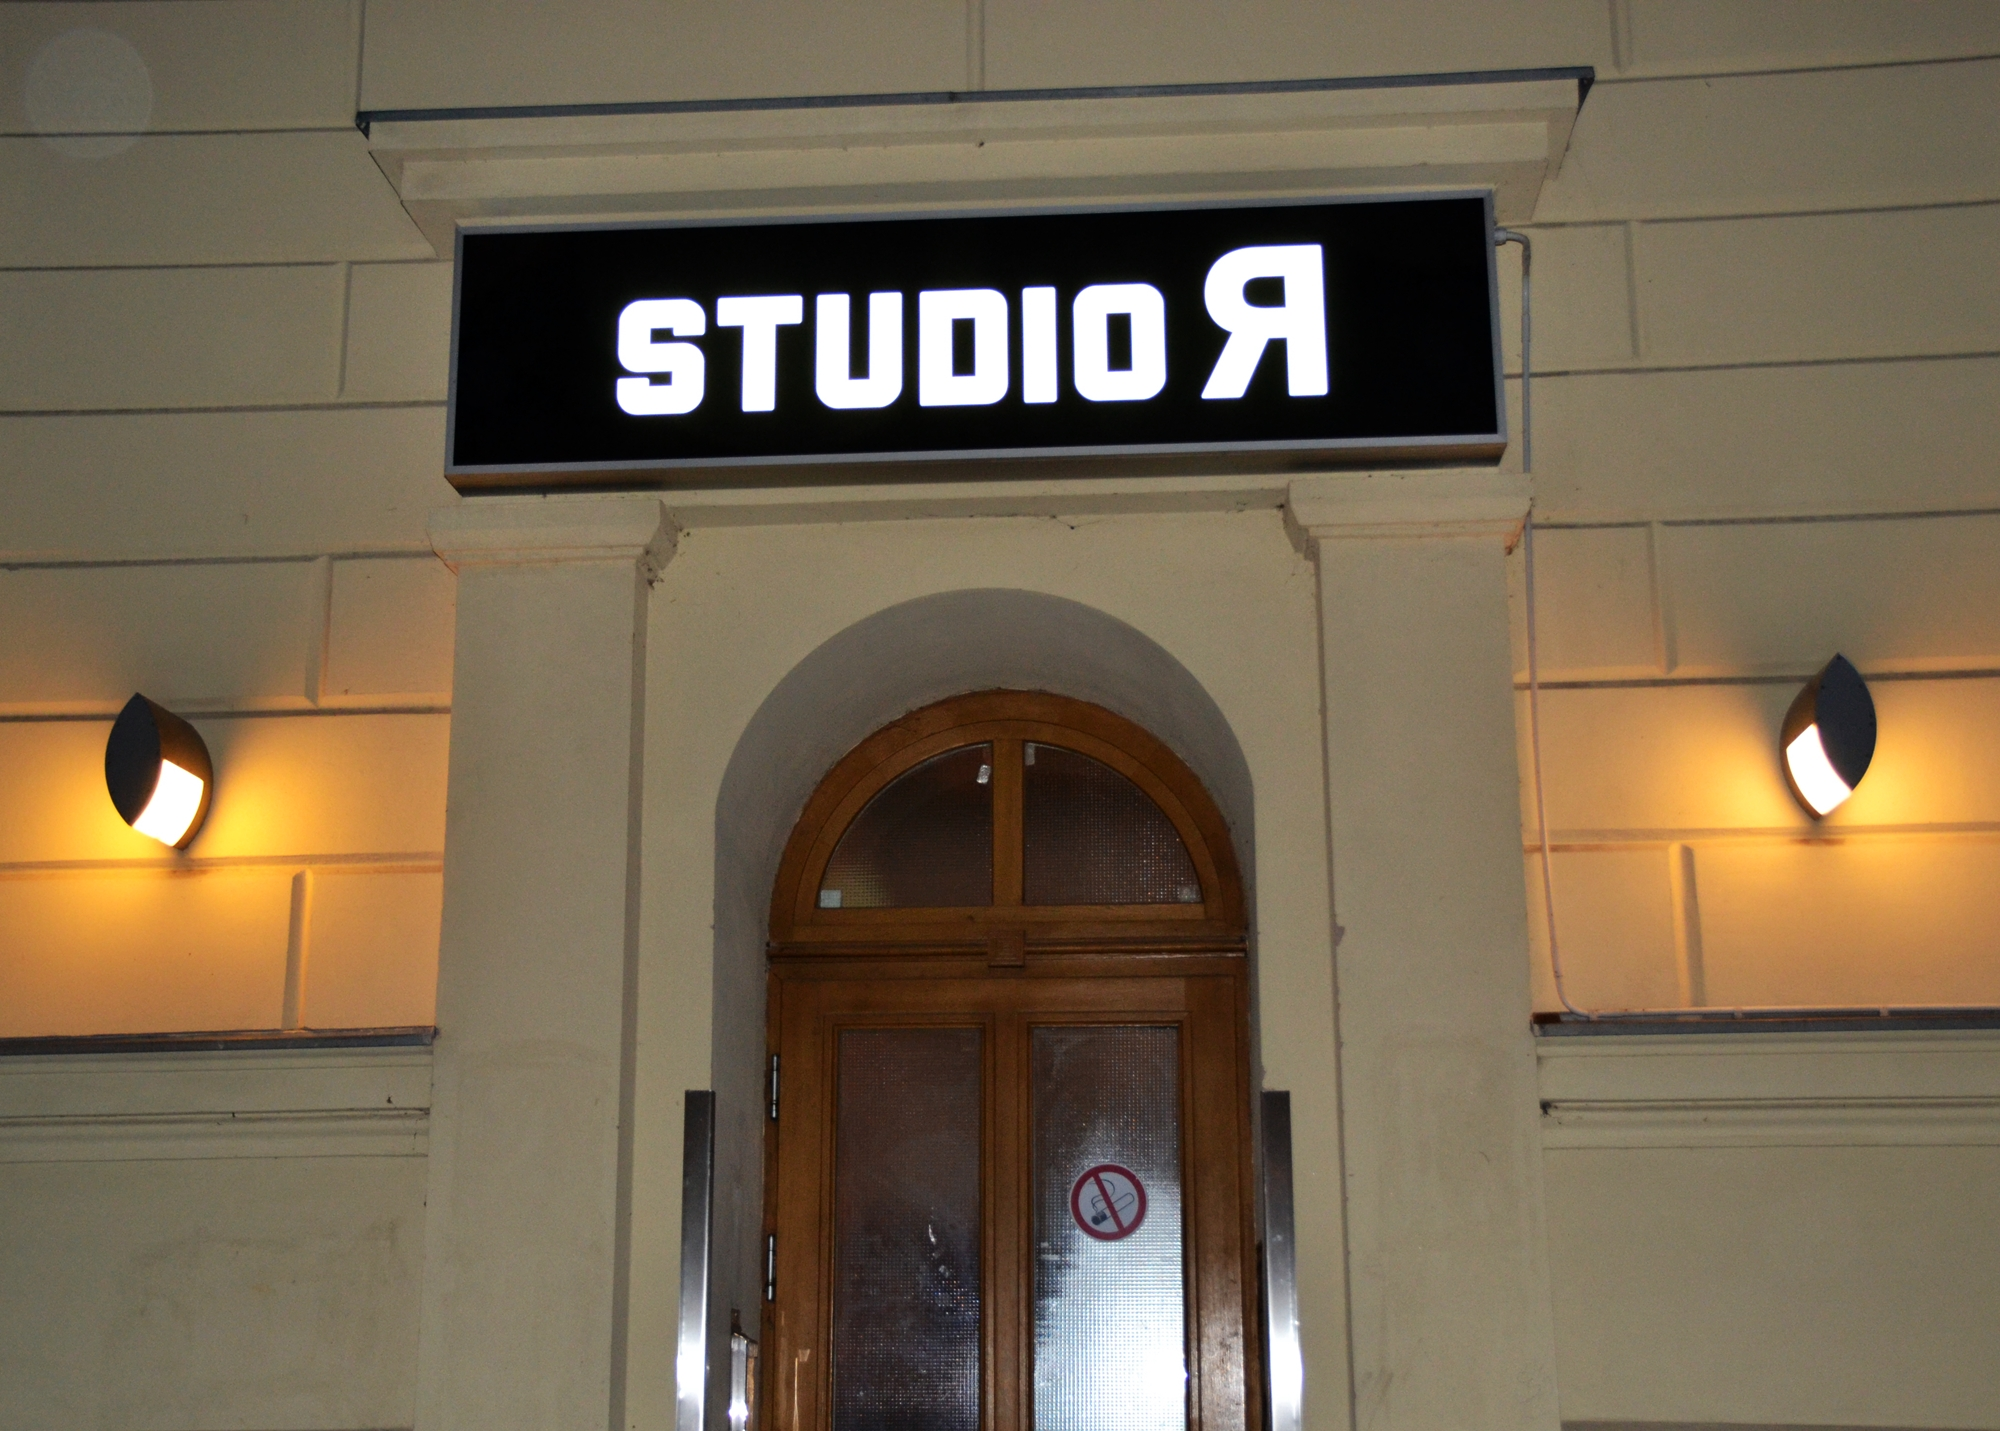 Das neue STUDIO Я am Maxim Gorki Theater - Foto: St. B.